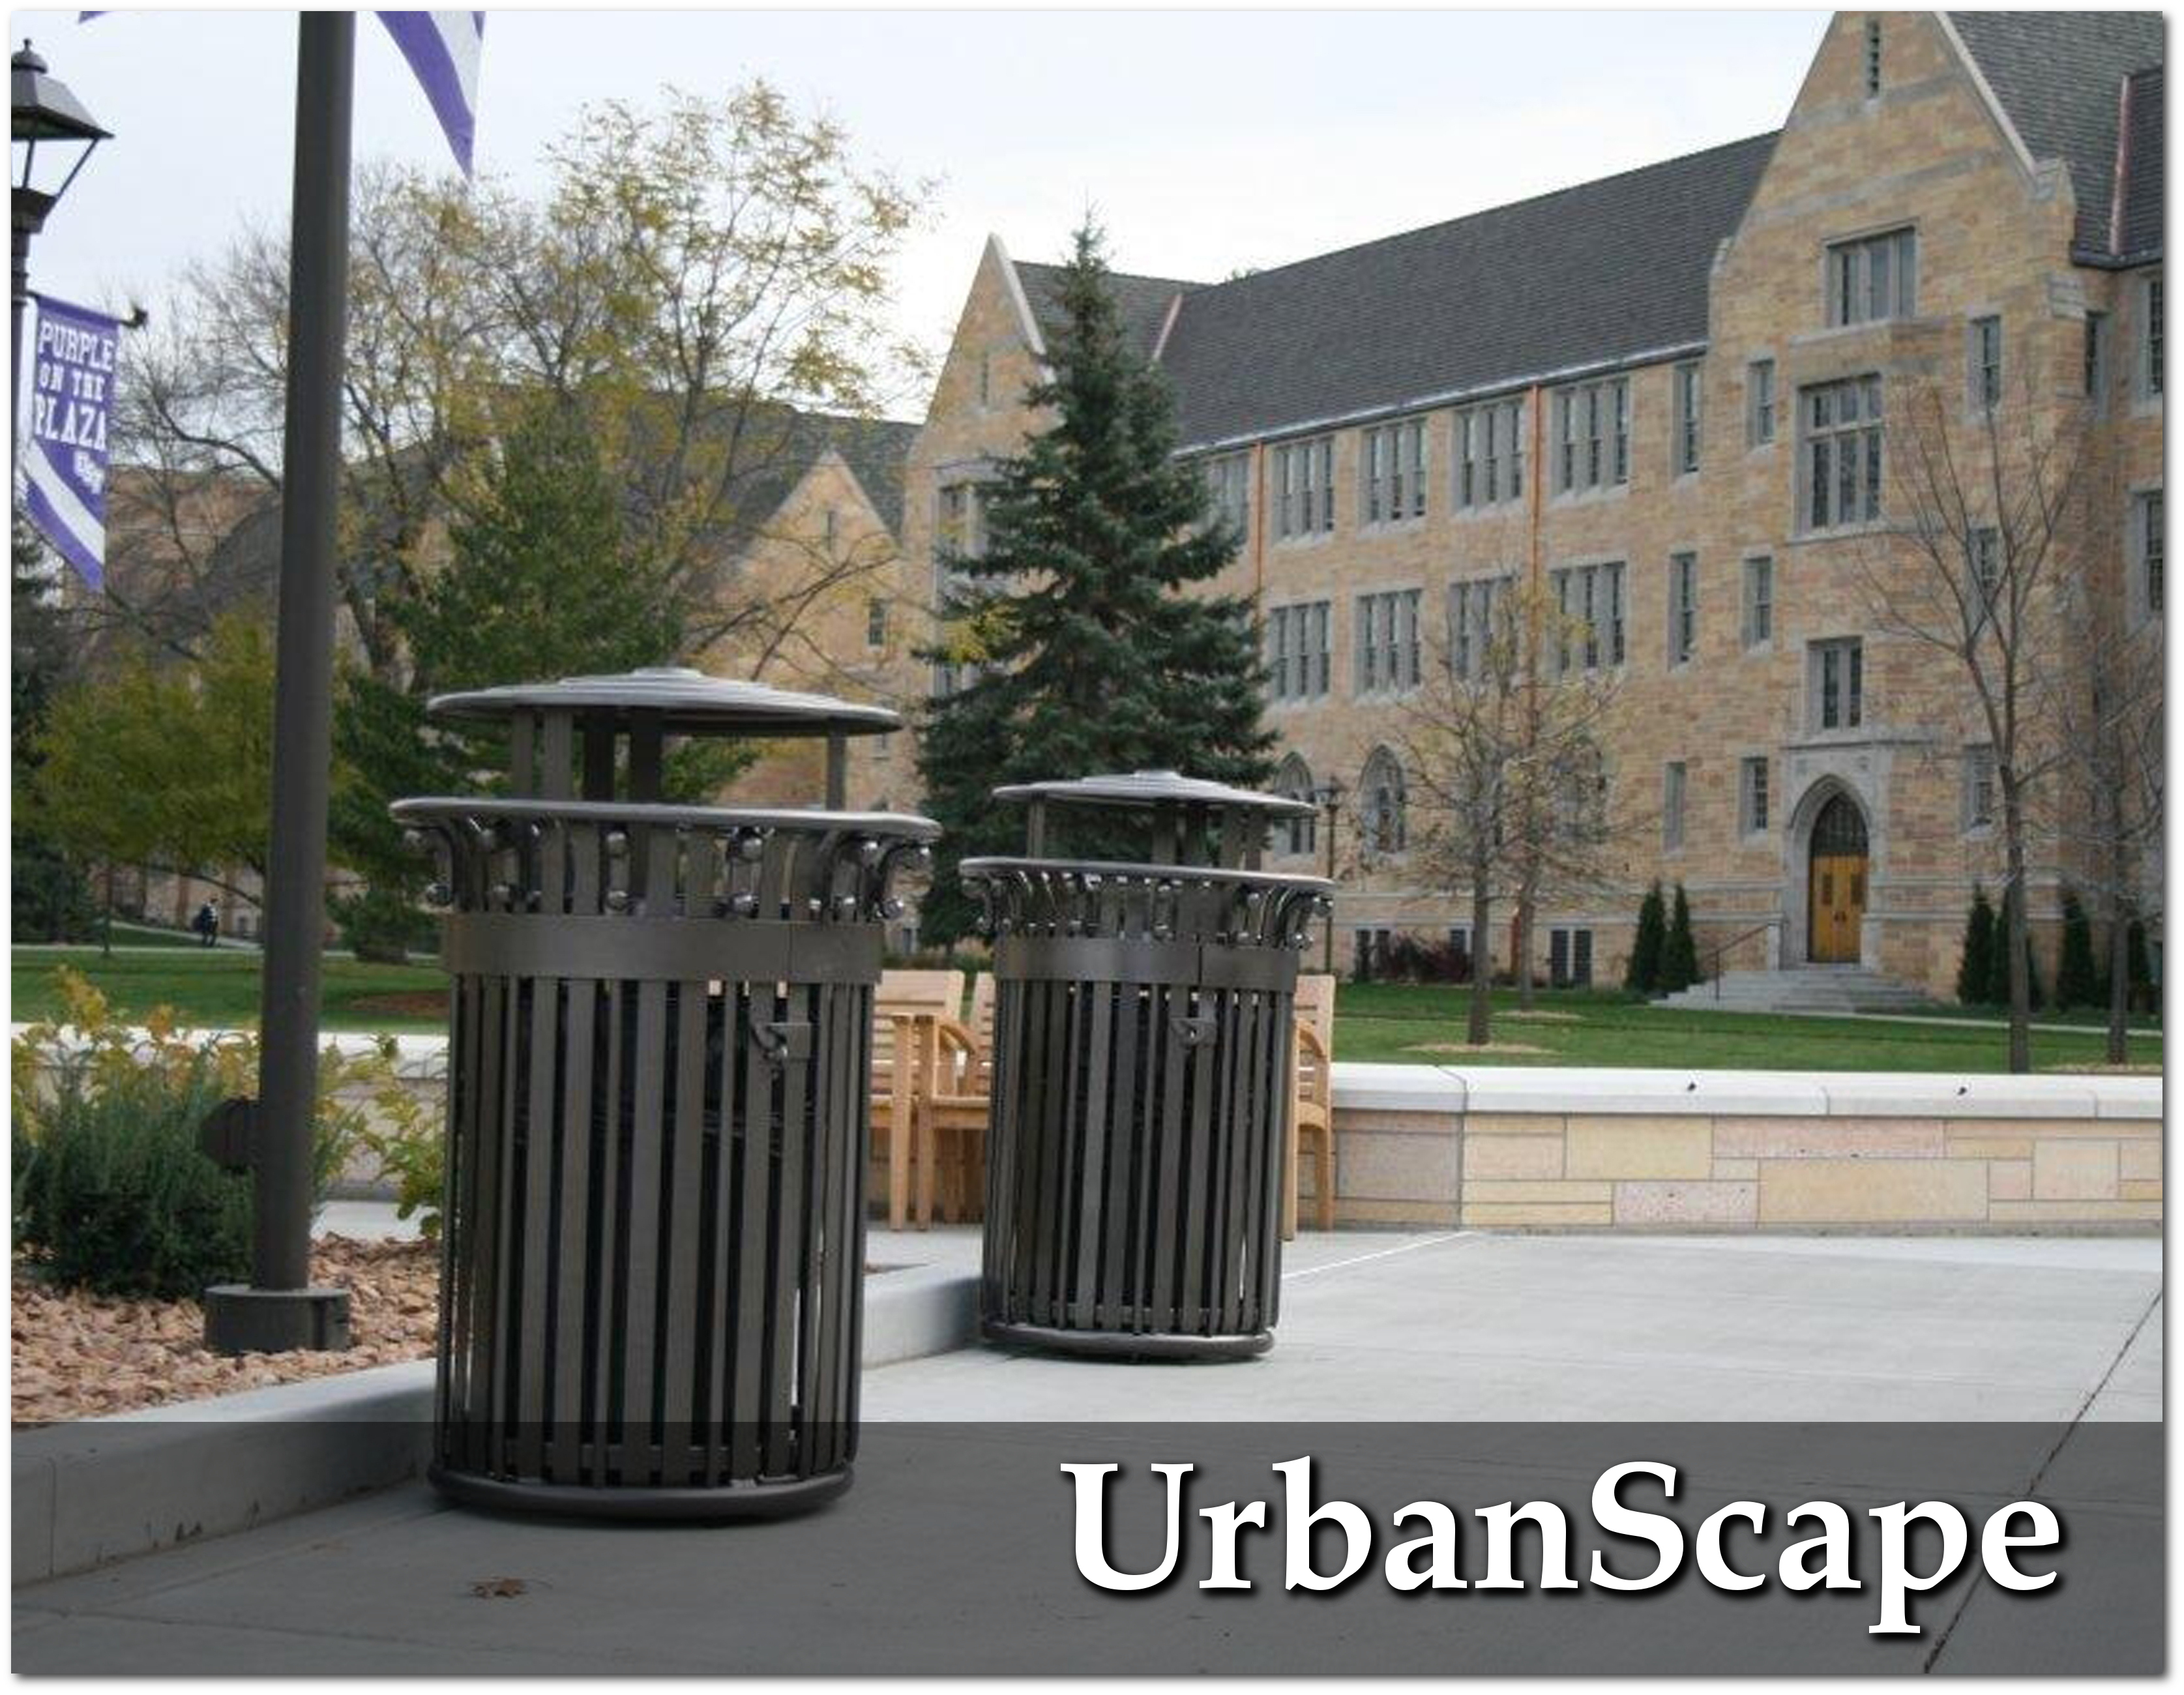 UrbanScape Trash Receptacles Overview